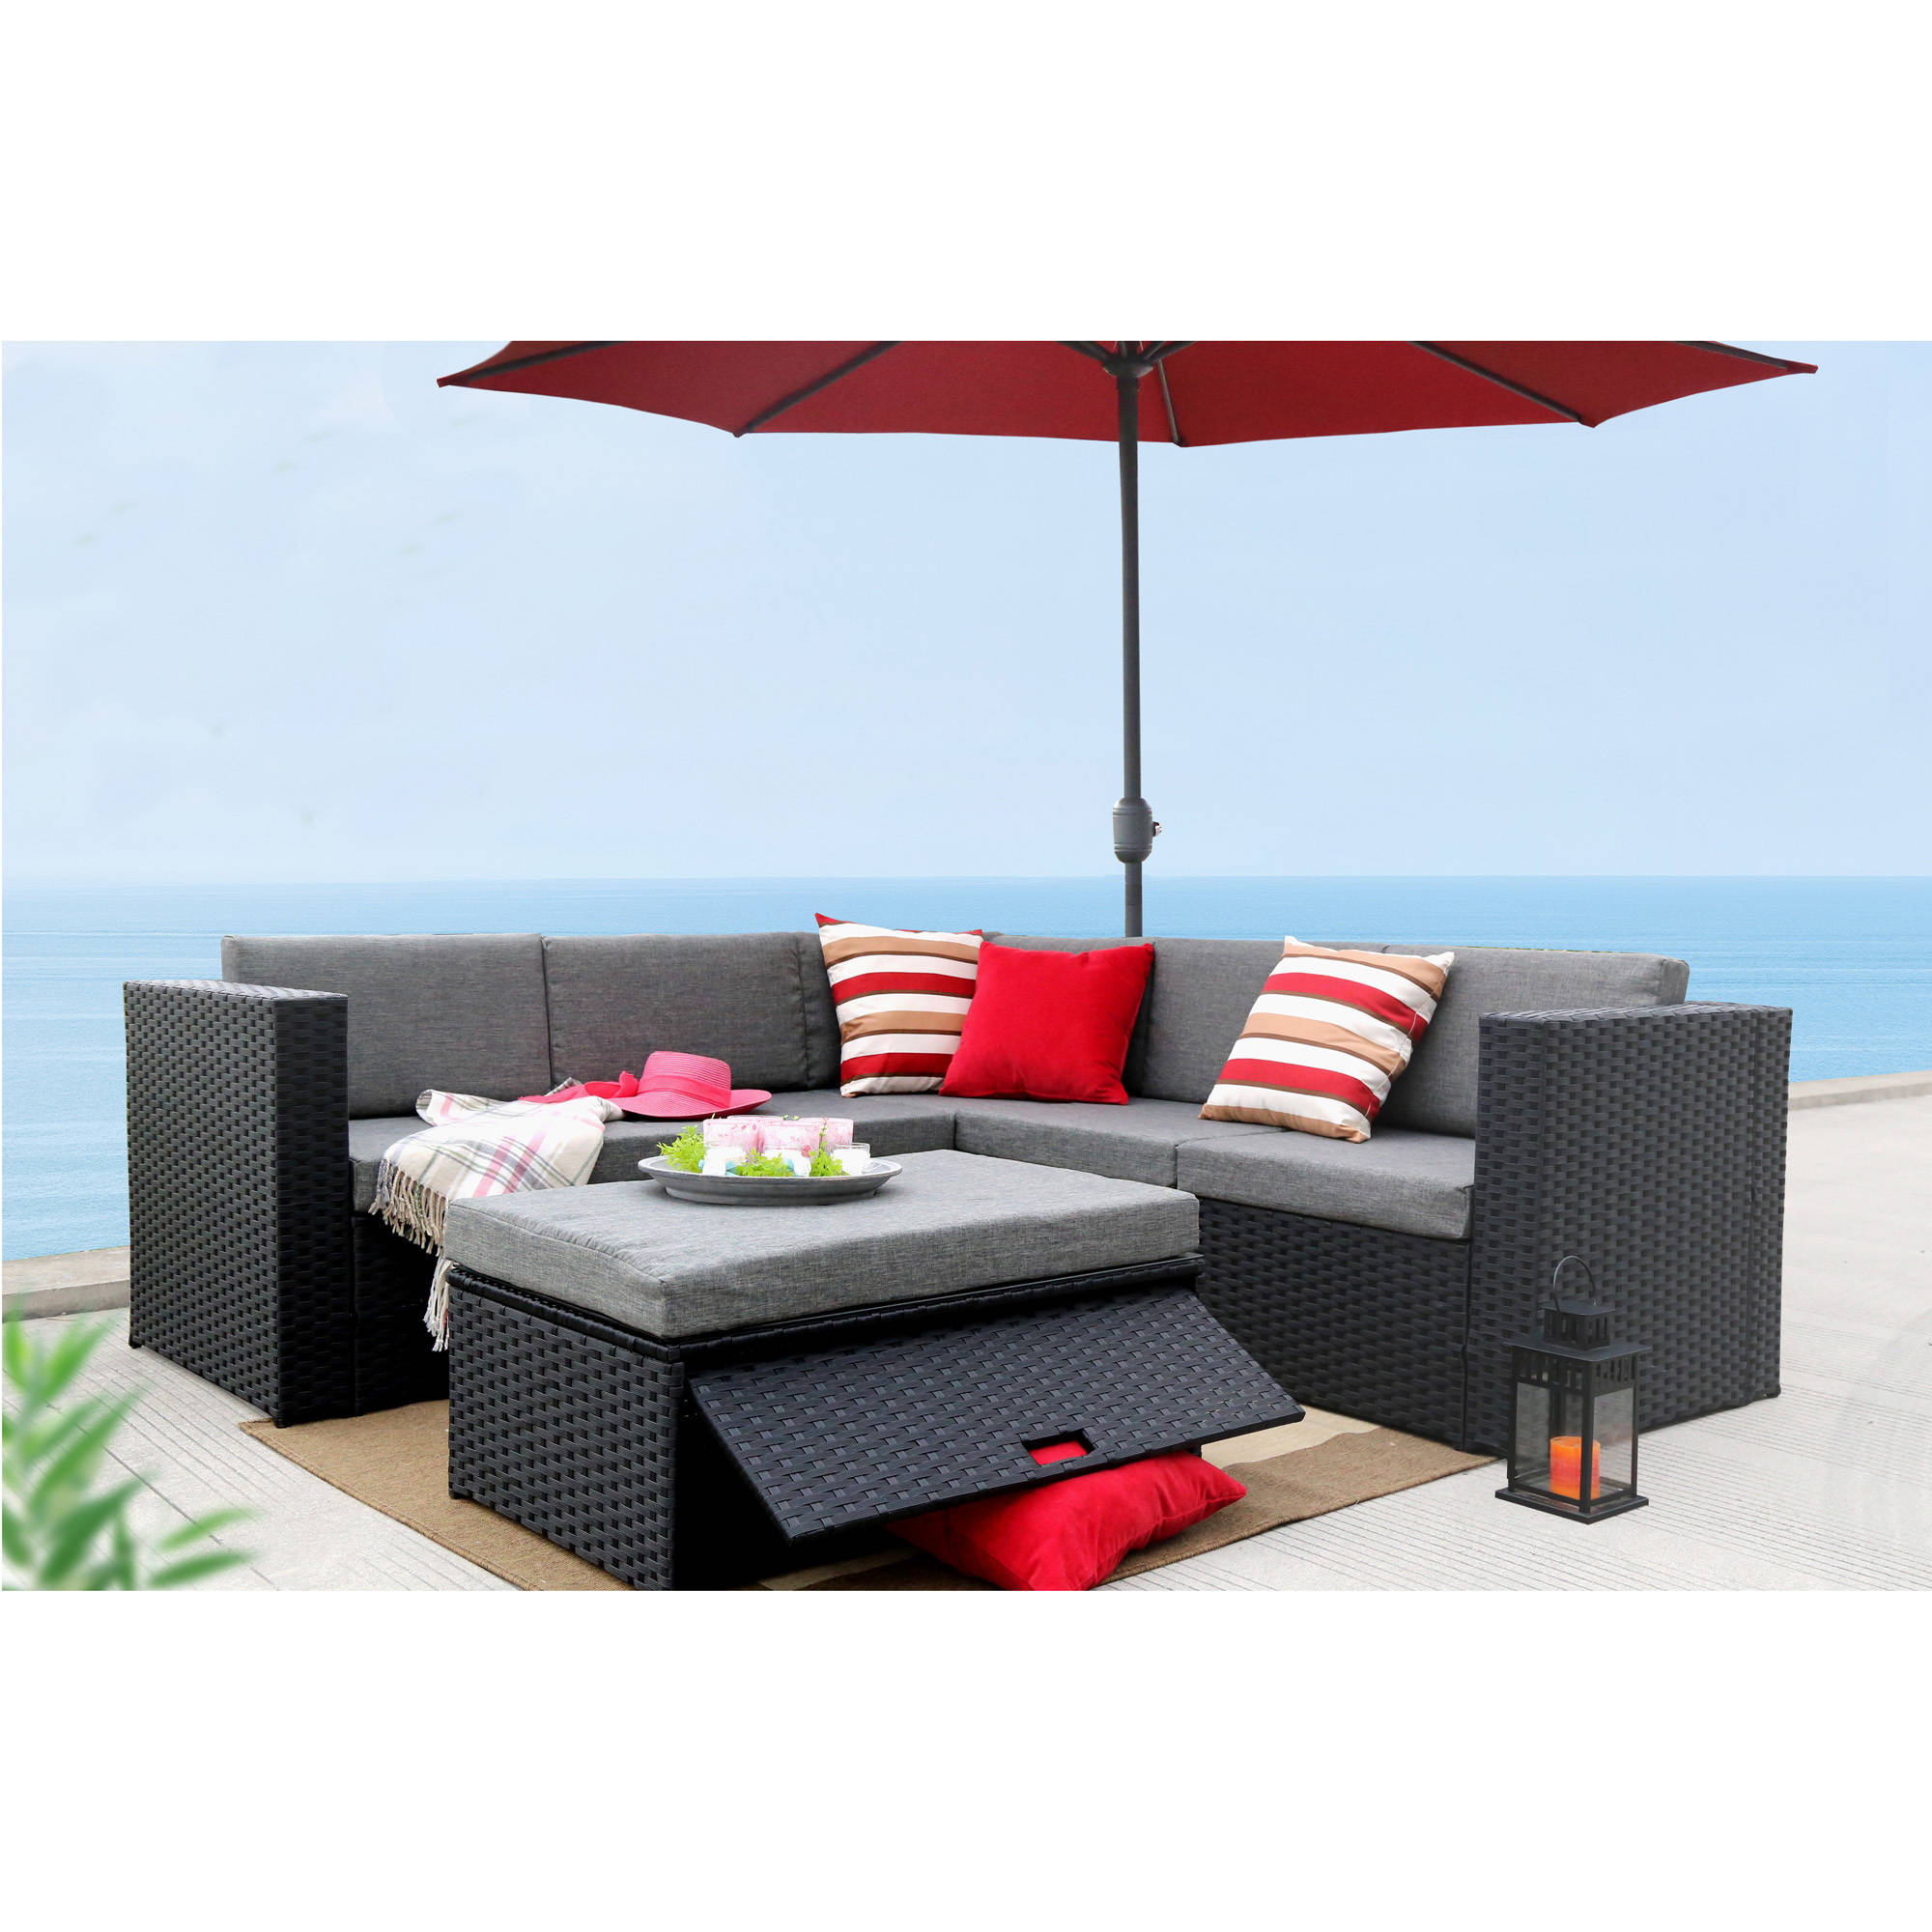 Baner Garden Outdoor Furniture Complete Patio PE Wicker Rattan Garden Corner Sofa Couch... by Caesar Hardware